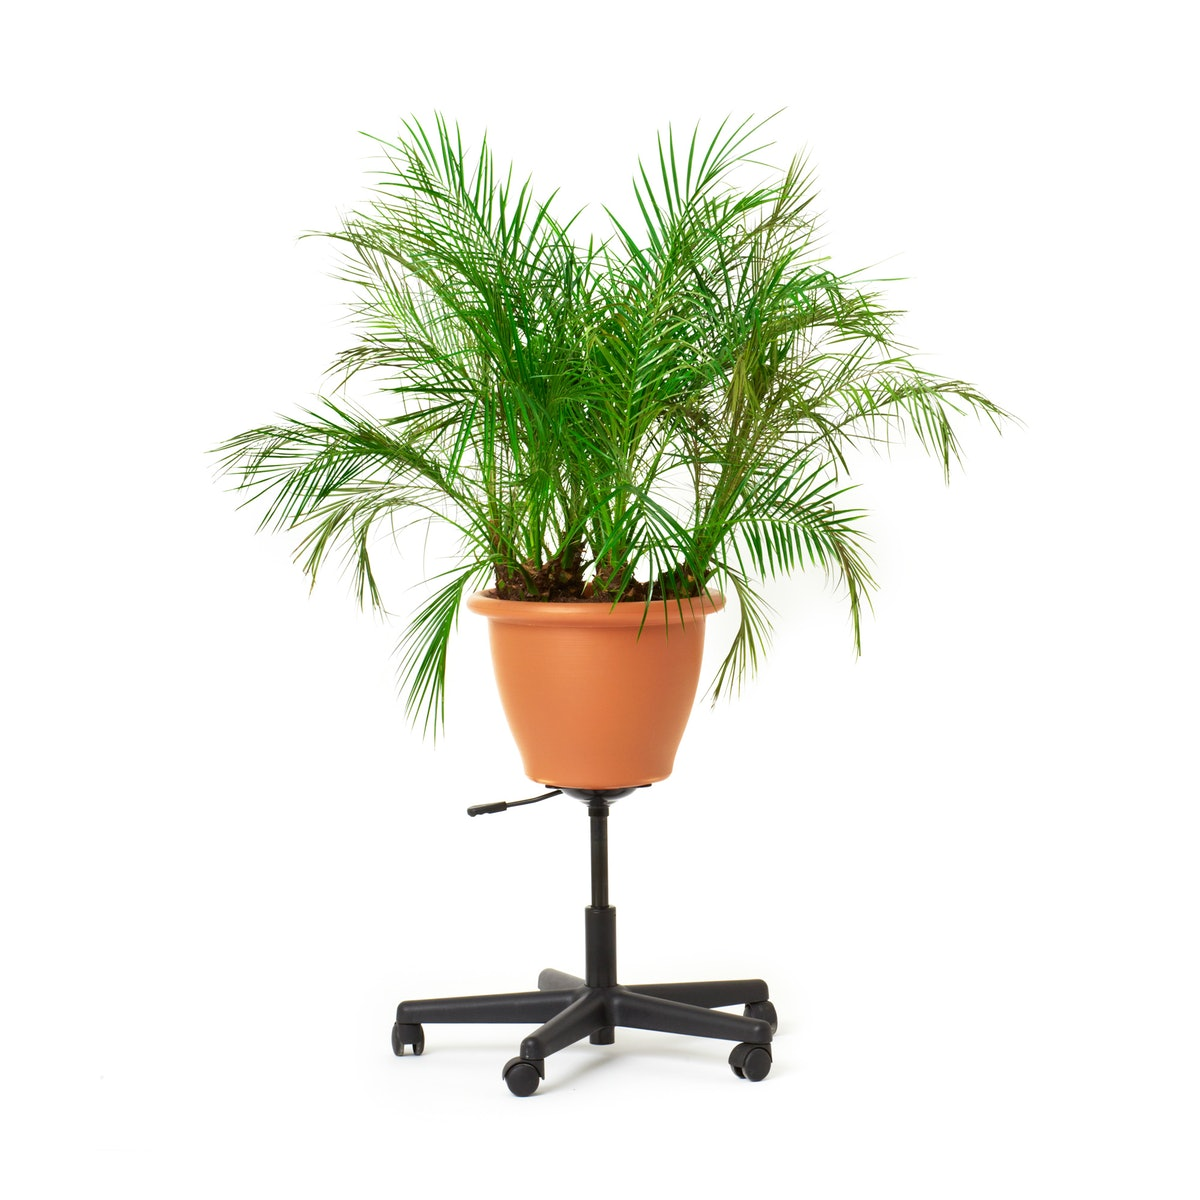 Lizzie Fitch's office planter